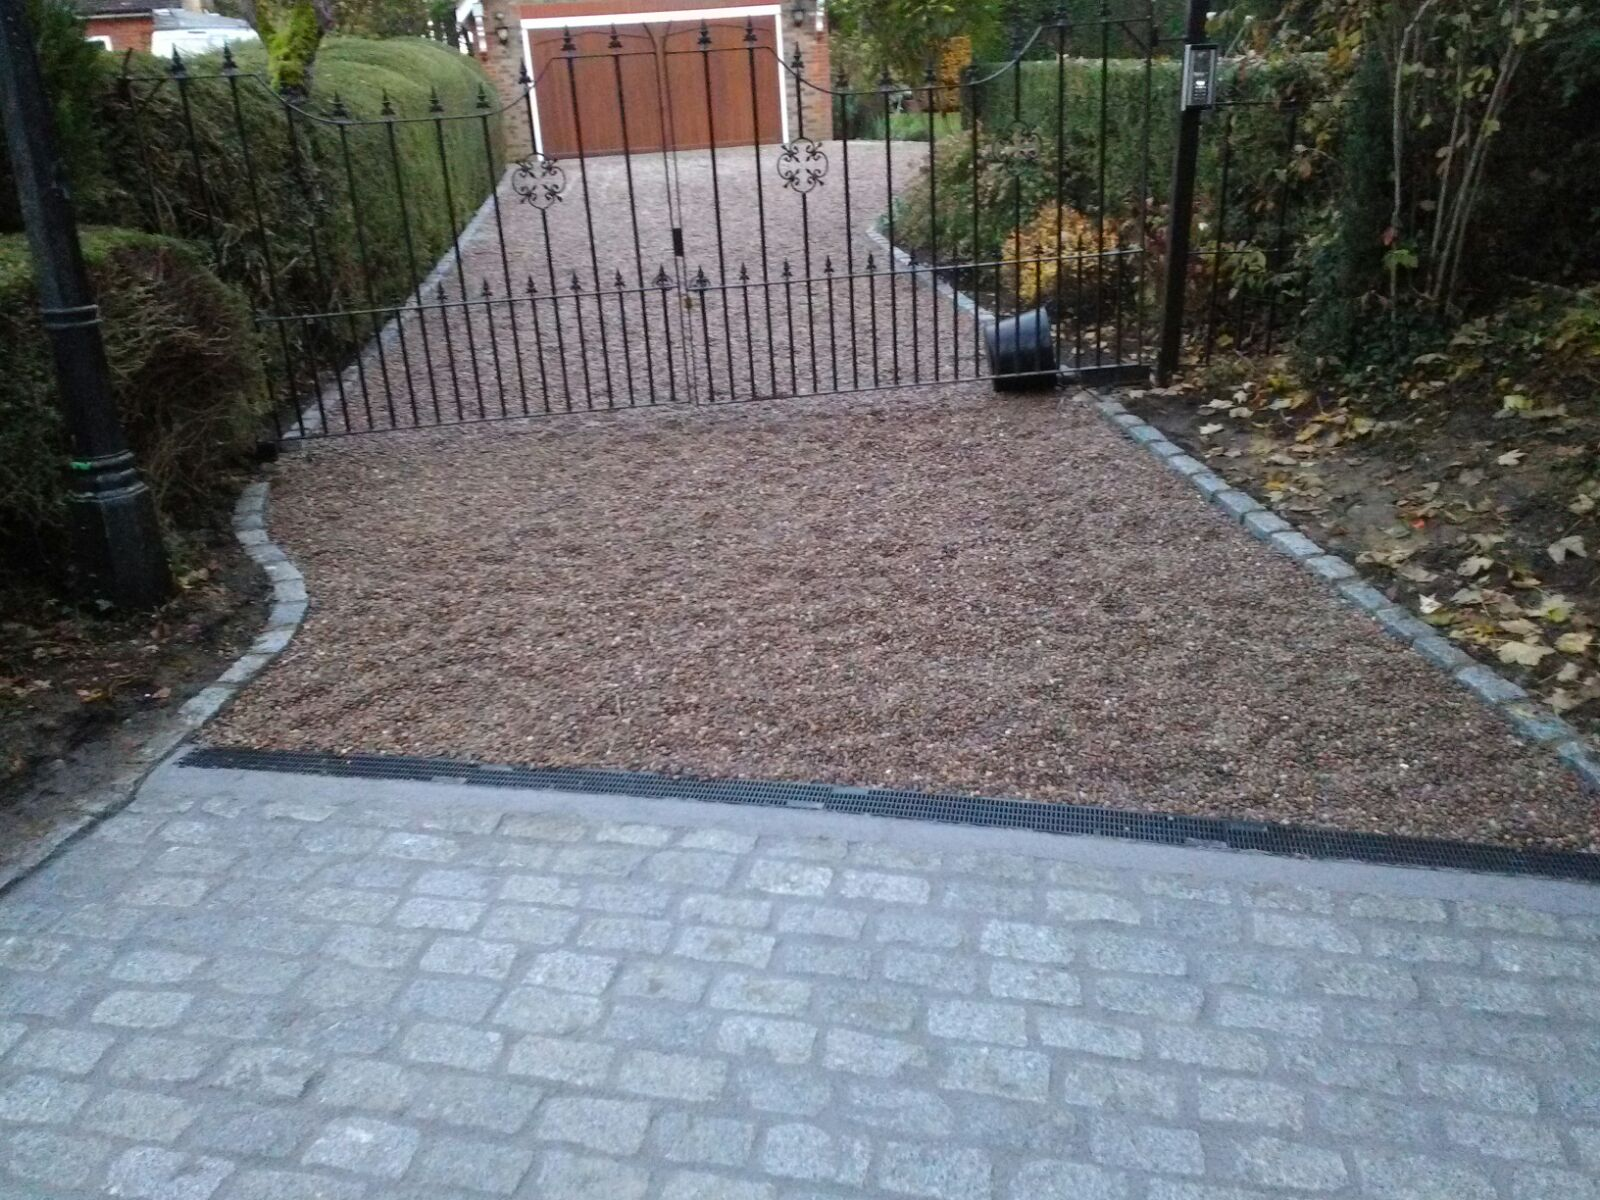 """gravel <strong>driveways<\/strong> kent"""" style=""""max-width:450px;float:left;padding:10px 10px 10px 0px;border:0px;"""">In relation to home remodeling,  block paving sutton coldfield choose your gut sensing regarding the professional provided that anything else suits up. It's crucial that you adhere to your upkeep plan and be sure that any modifications that you just do make, stay in good condition over time. Regular servicing is the best way to maintain your landscape design searching wonderful. Home improvements also, help you feel good which you have accomplished your greatest to make a wonderful house for your family.</p> </p> <p> 1 gallon of fresh paint will handle about 350 sq ft. Secure it with a little bit of tape to produce a far better close. If your kitchen sink is dripping through the spout, the faucets key ink cartridge should get replaced. For those who have a broken glass windowpane, you can test this short-term strategy to prevent pests from getting into. Introducing heat retaining material is a wonderful way to make the house chillier during the summer time, milder in the winter, plus more audio proof.</p> <div class="""